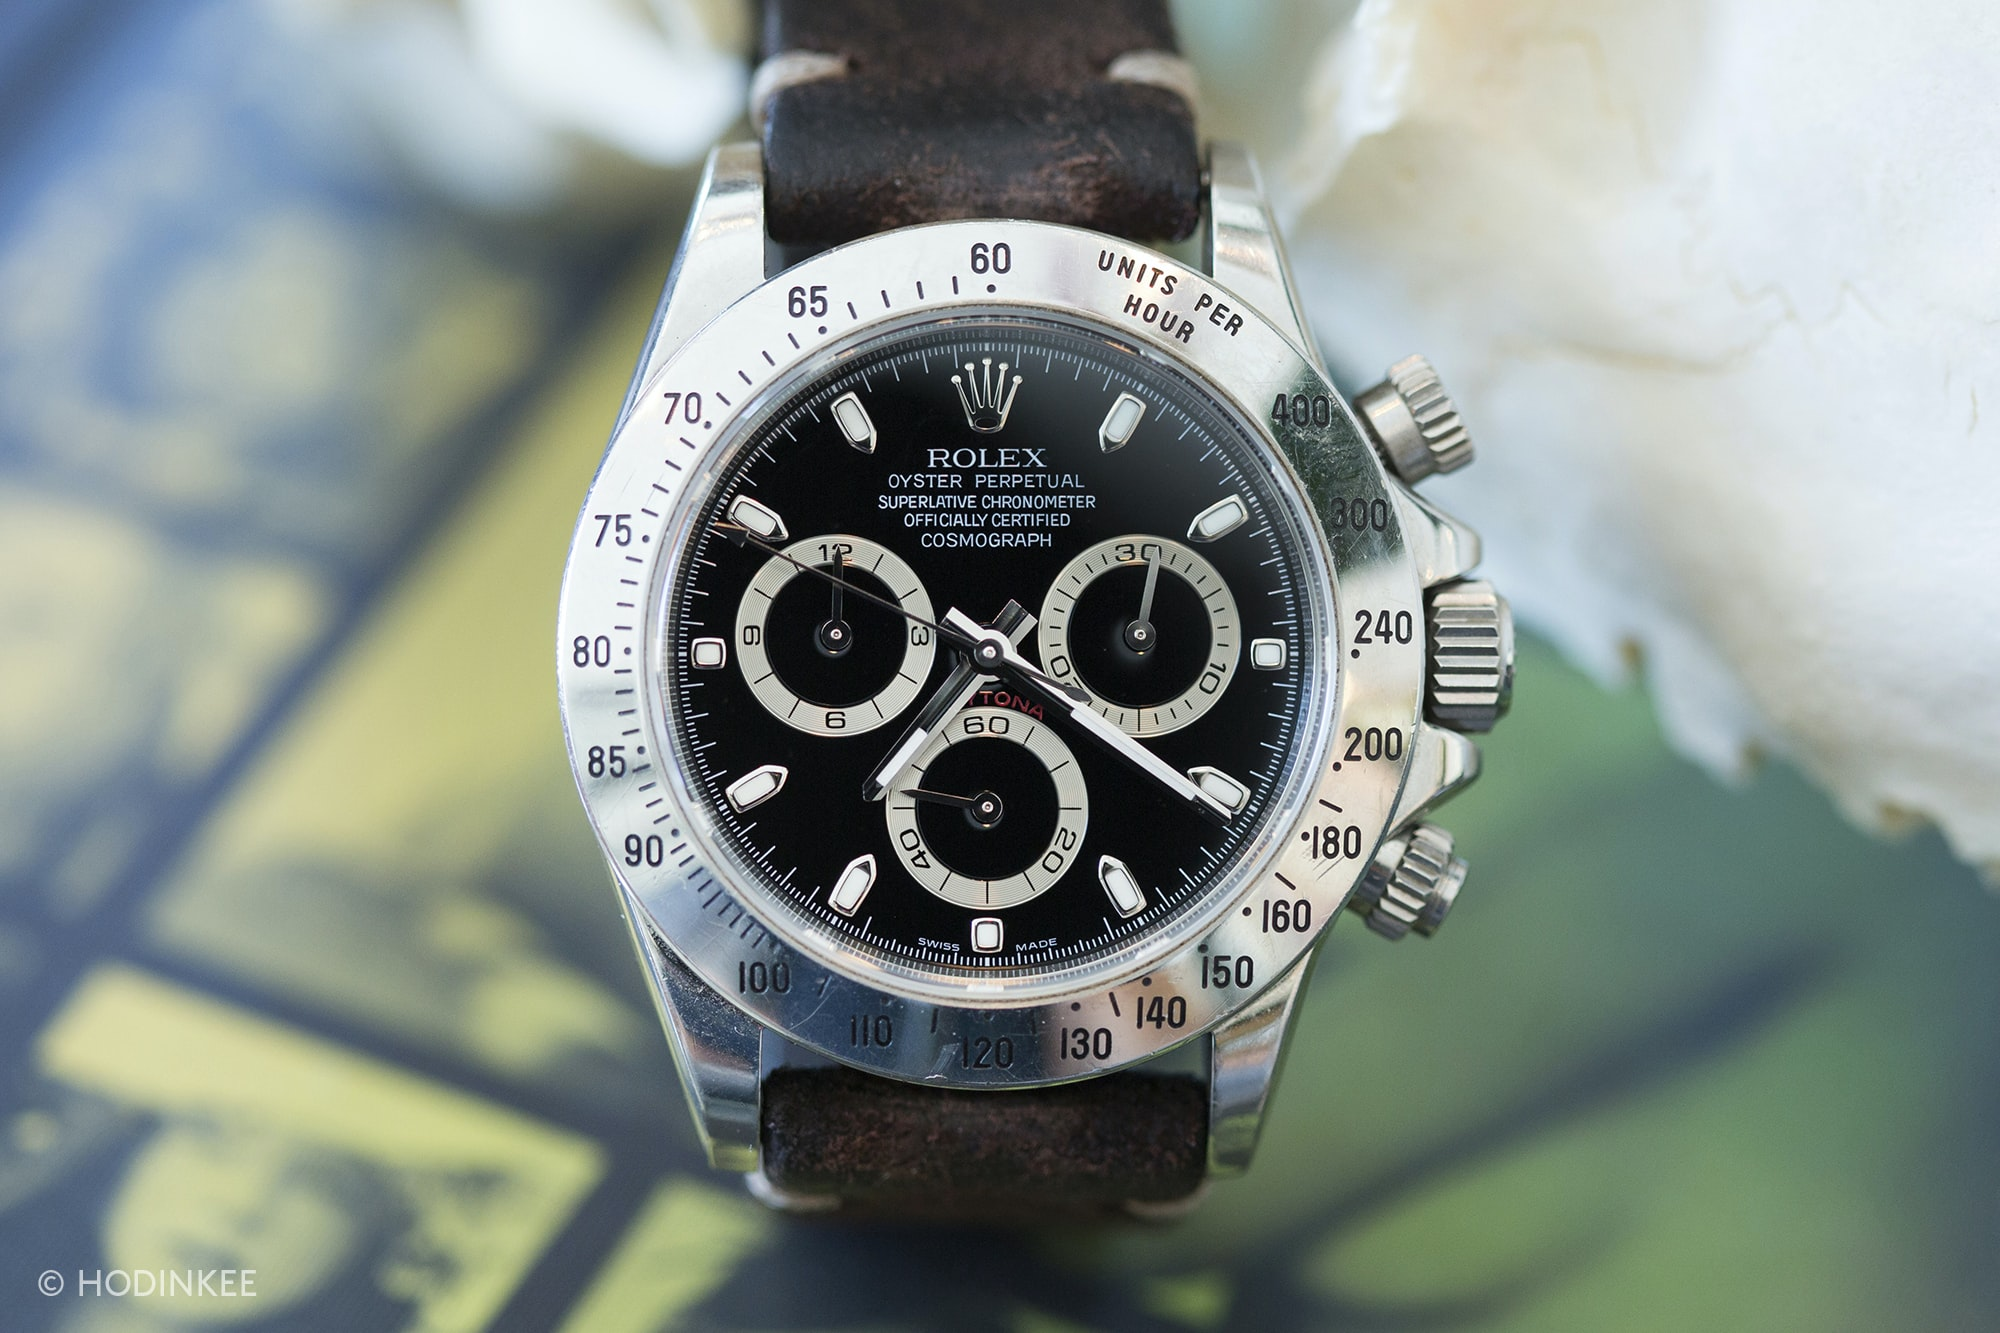 Rolex Daytona Reference 16520 john edelman Talking Watches: With John Edelman Talking Watches: With John Edelman  3H0A2716 copy